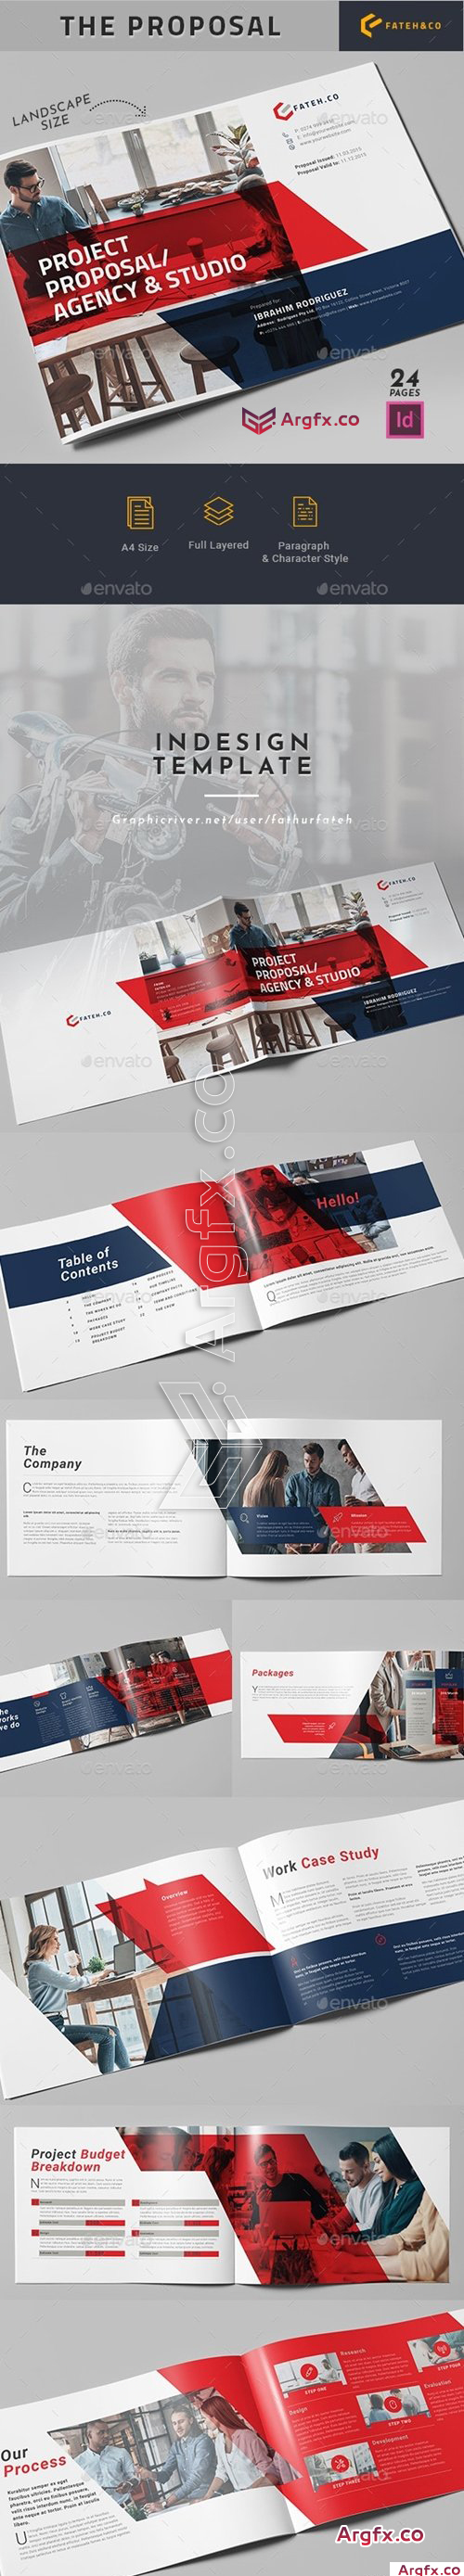 GraphicRiver - The Proposal Vol.4 Landscape 25609857